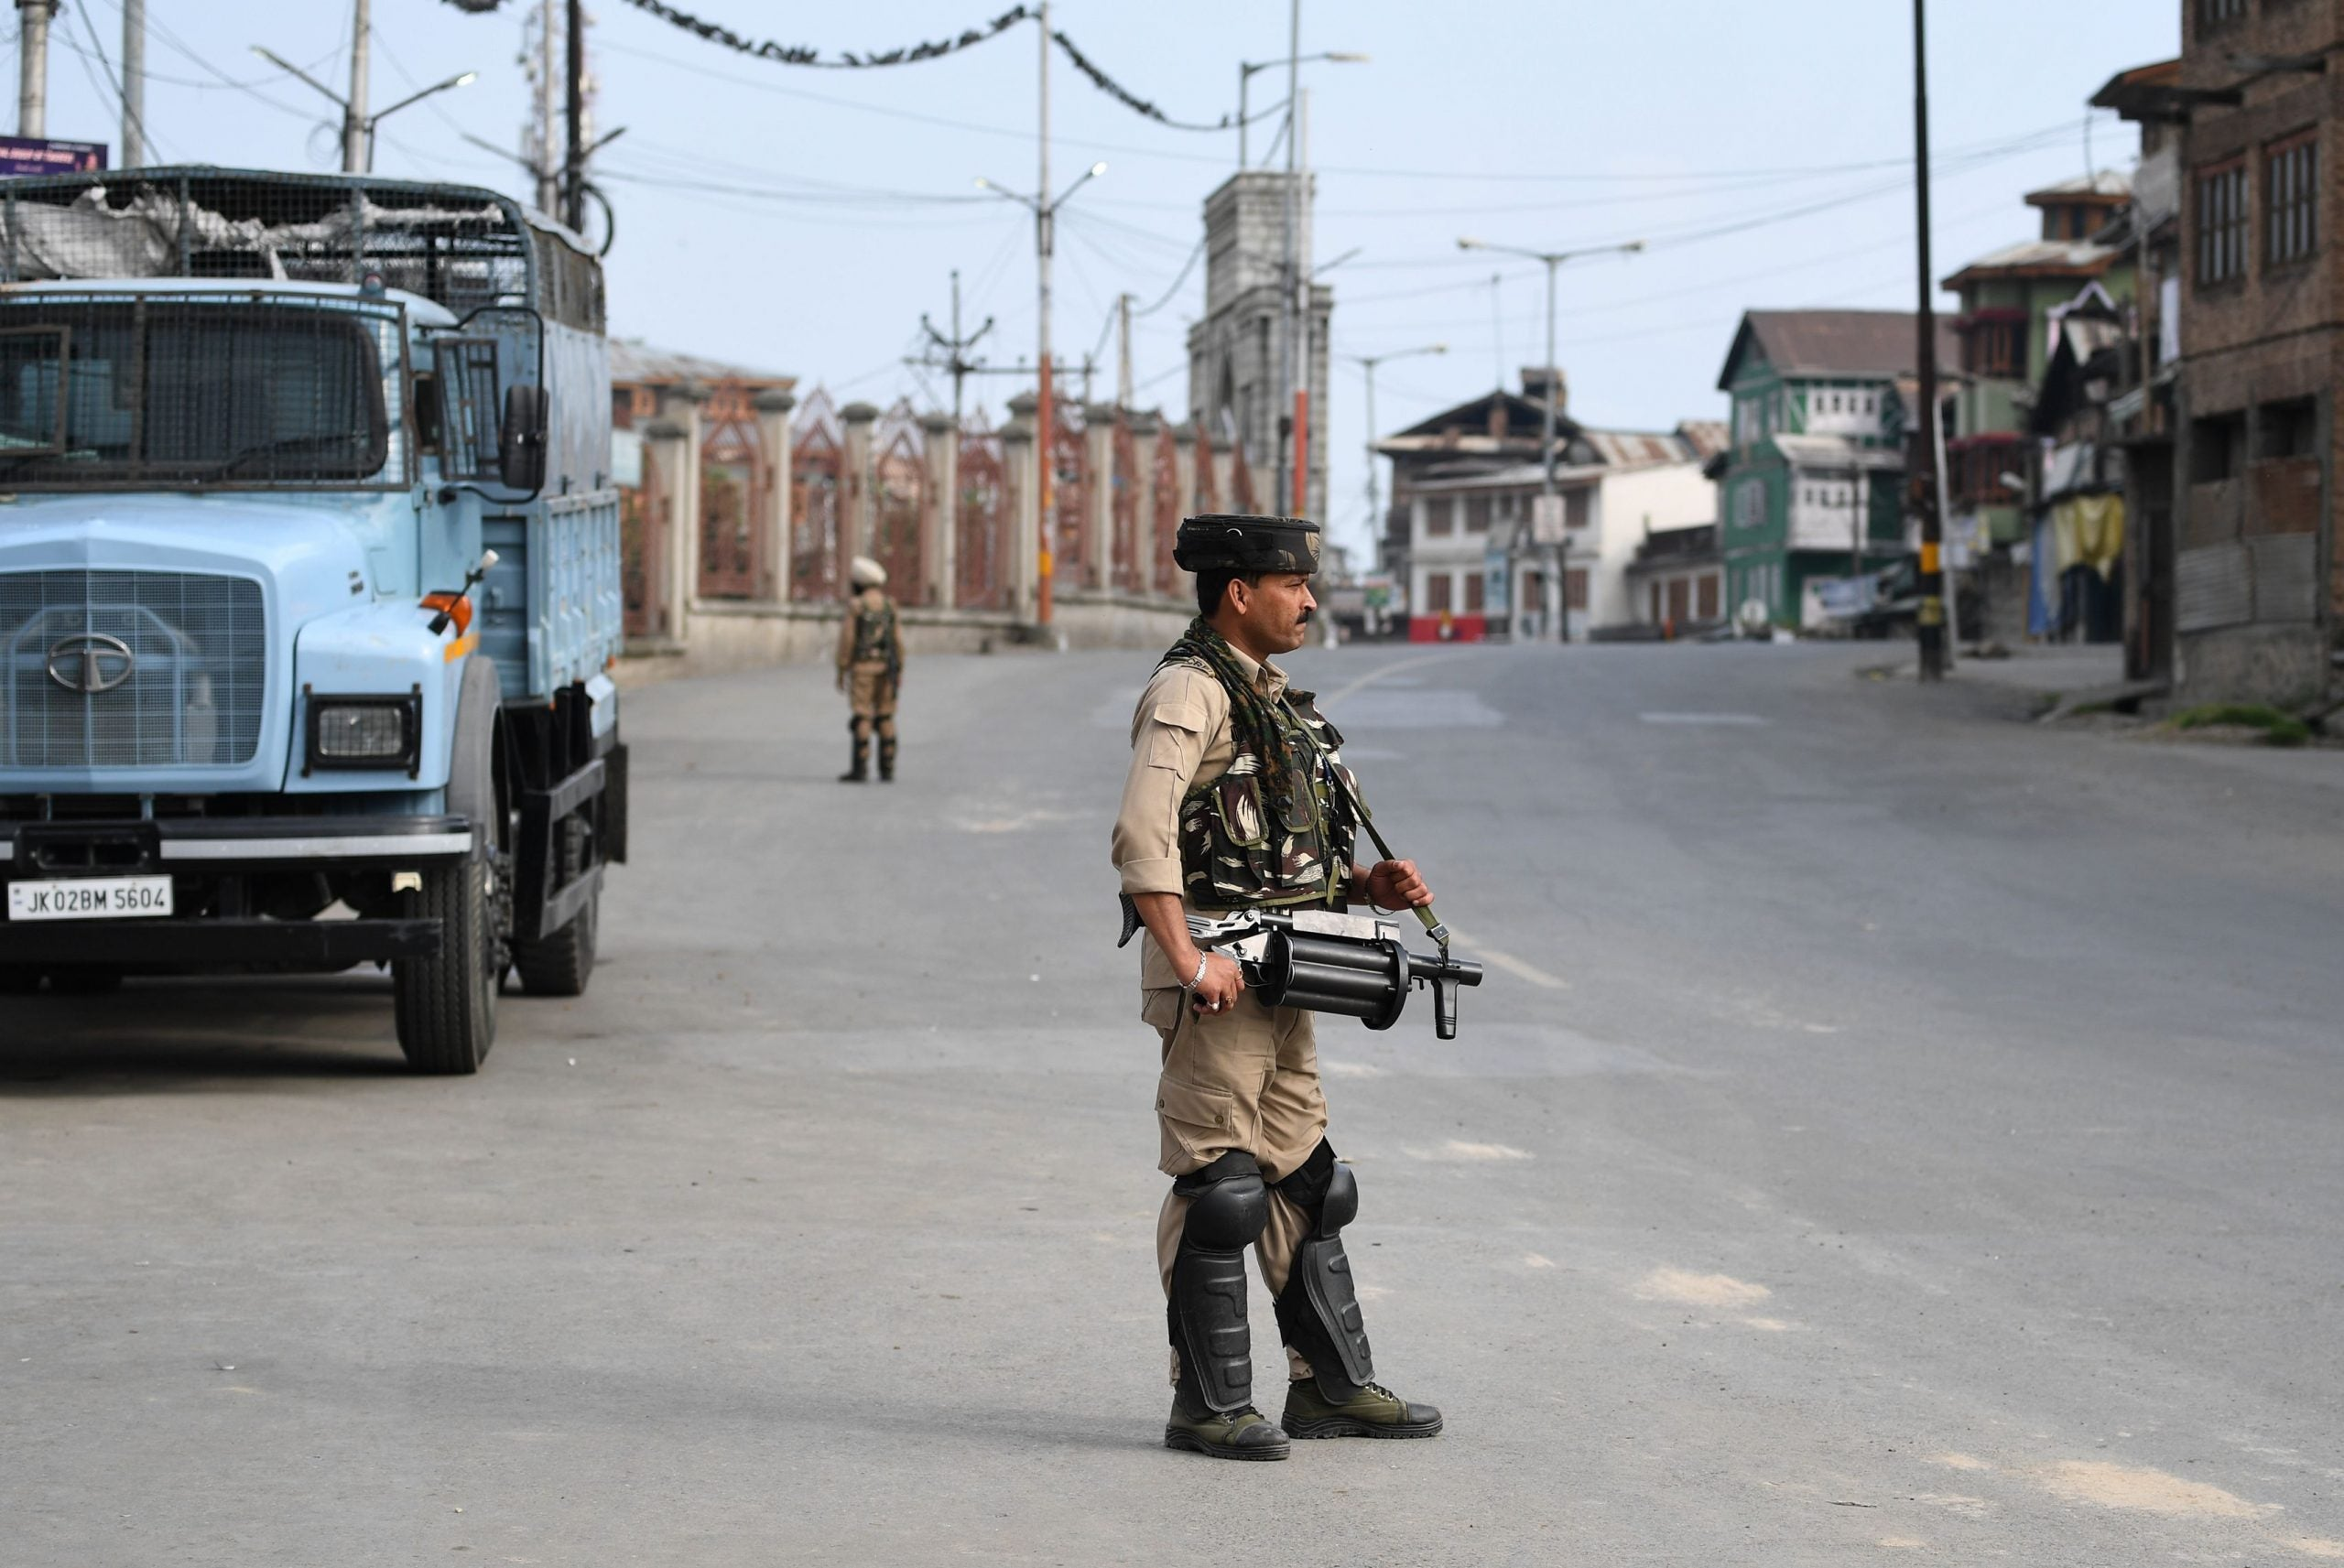 If Kashmir is taken by force, India's neighbour may draw unwelcome lessons